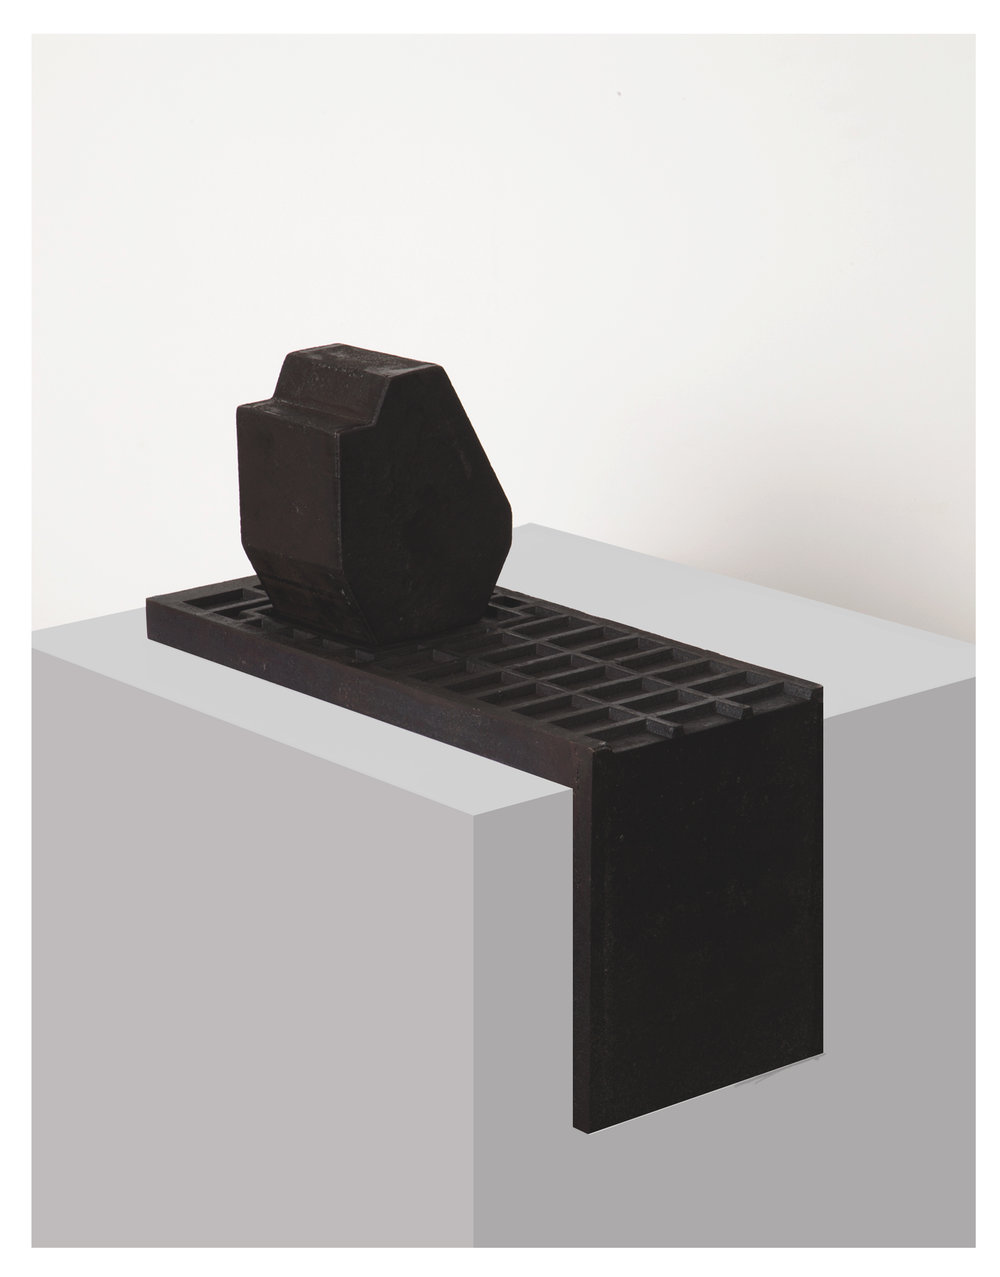 untitled (monolith and corner grid).jpg